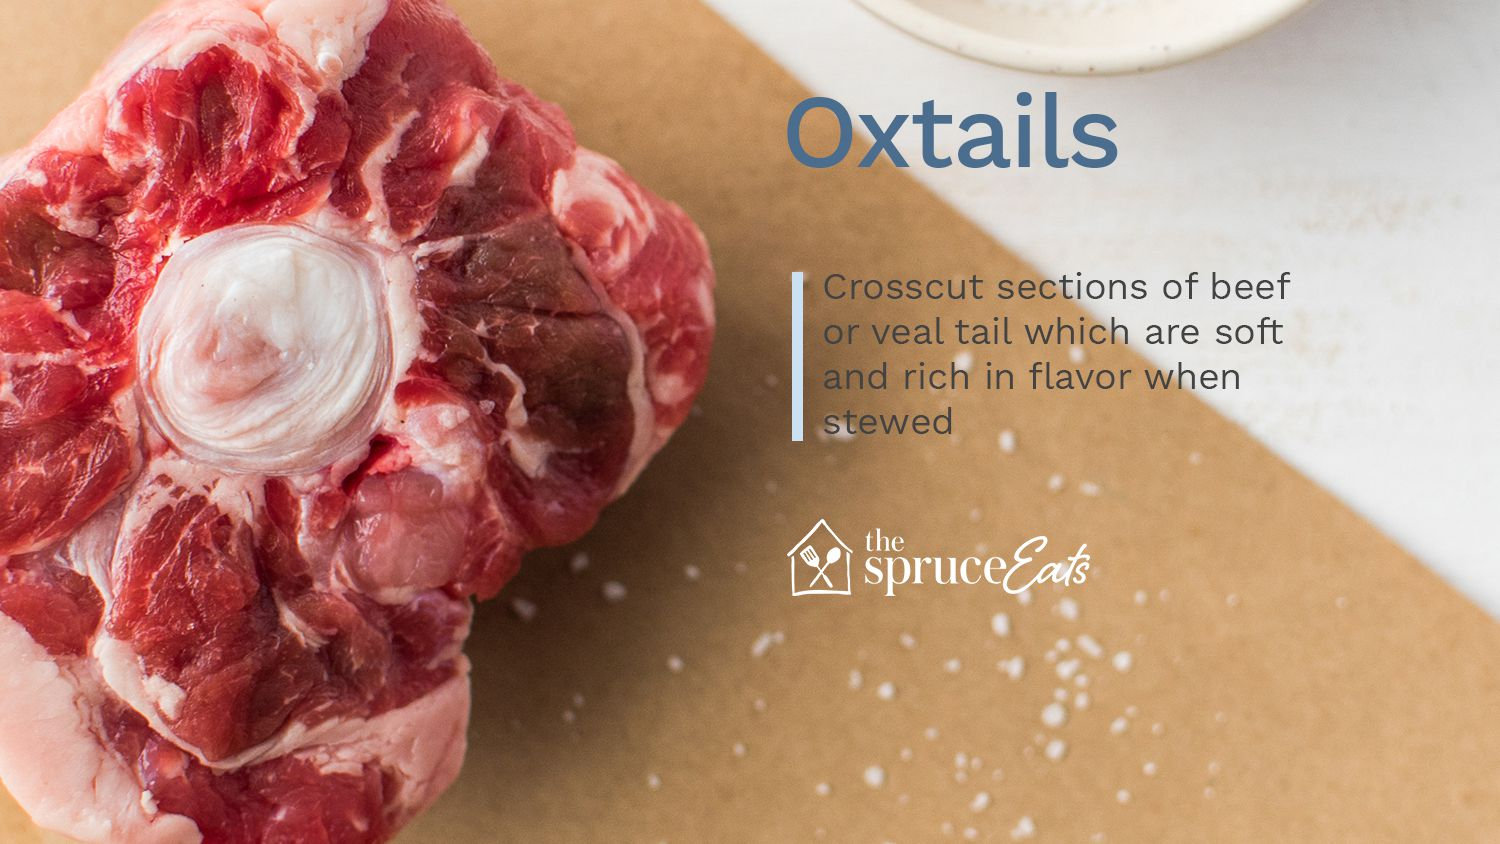 What Is Oxtail and How Is It Used?